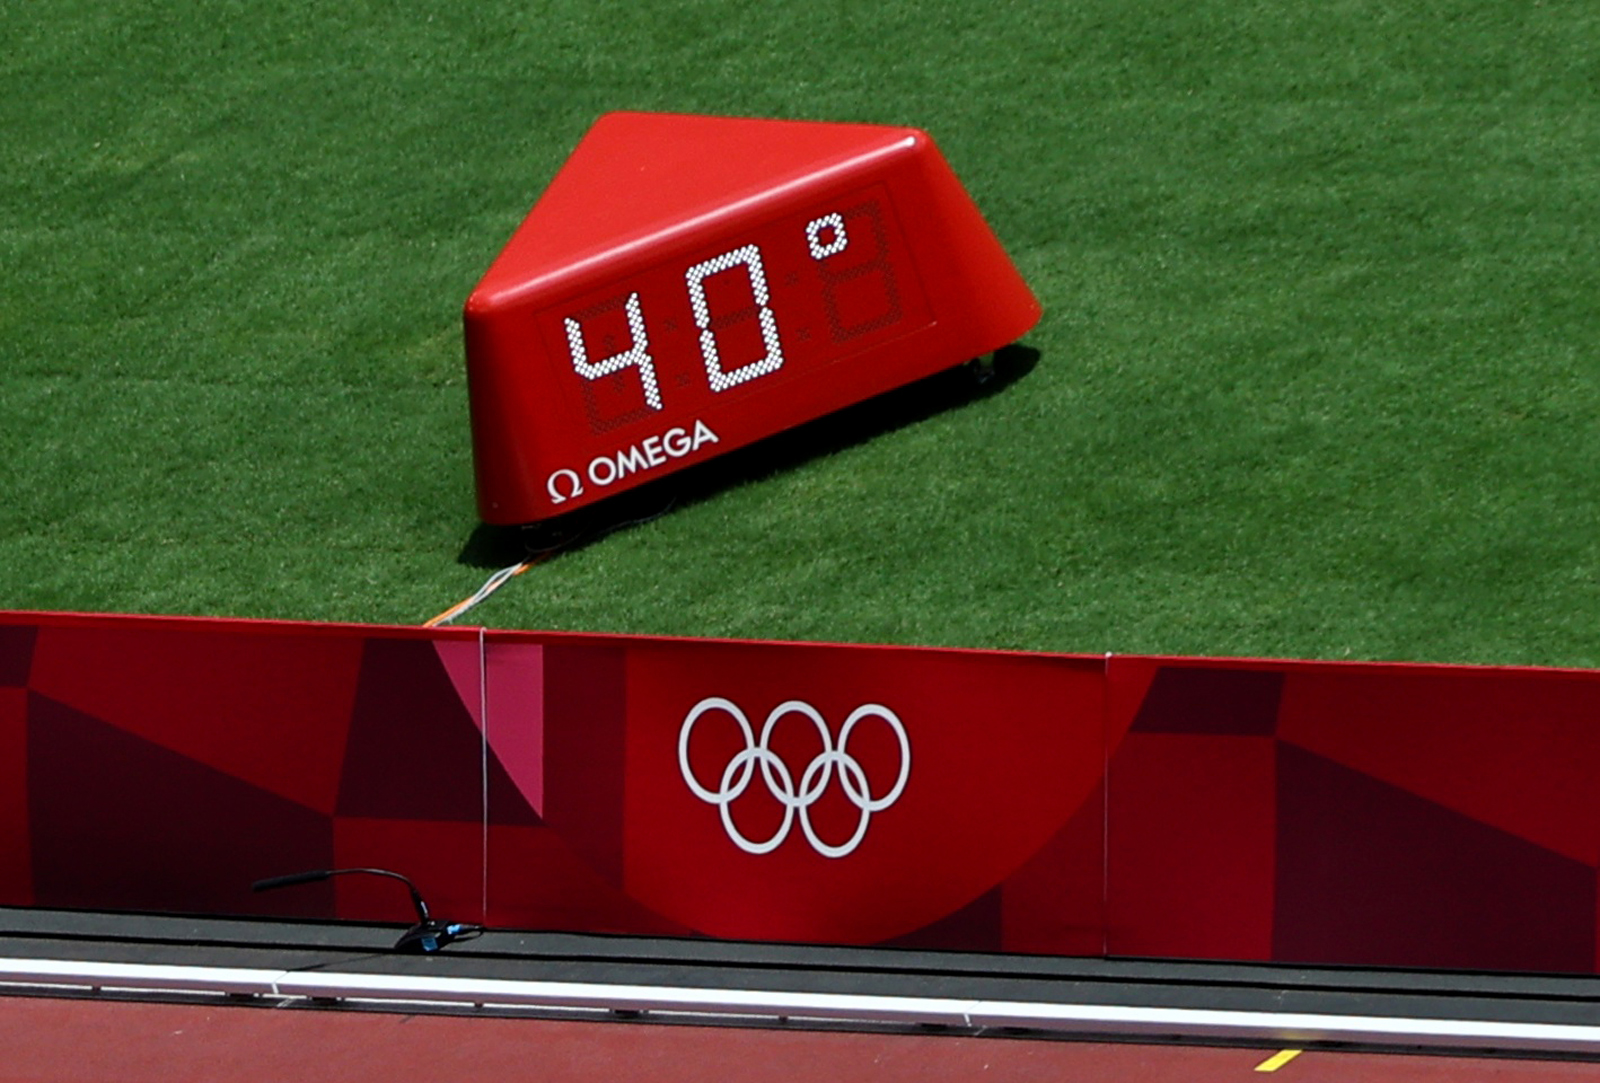 The temperature reads 40 degrees Celsius in the Olympic Stadium on August 1.